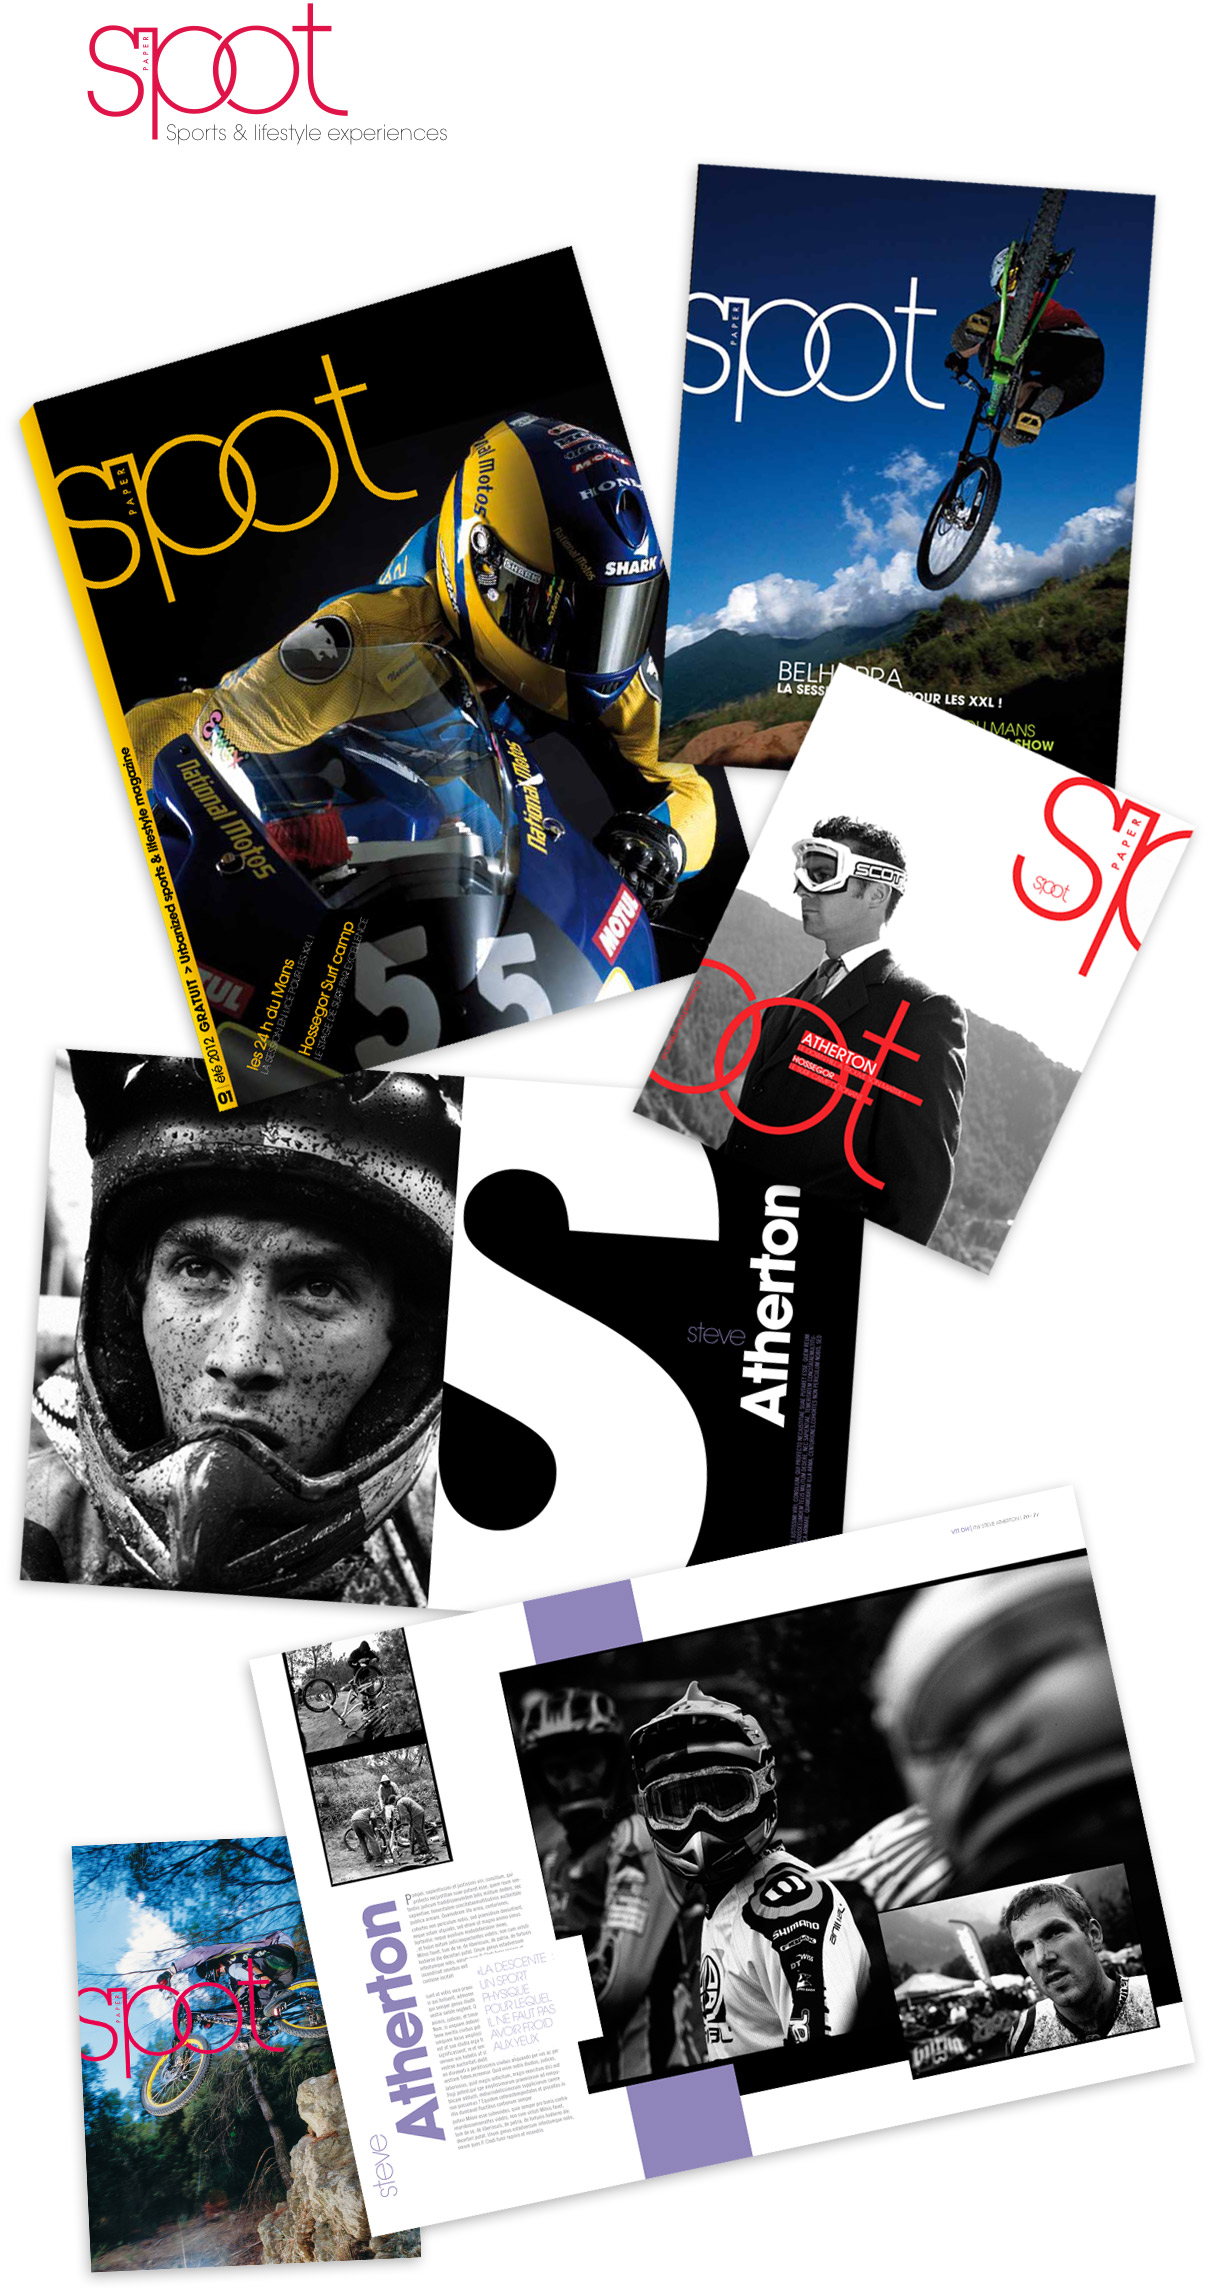 Projet, concept, magazine, D.A, design graphique, photo, sports extrêmes, riding © Olivier Varma